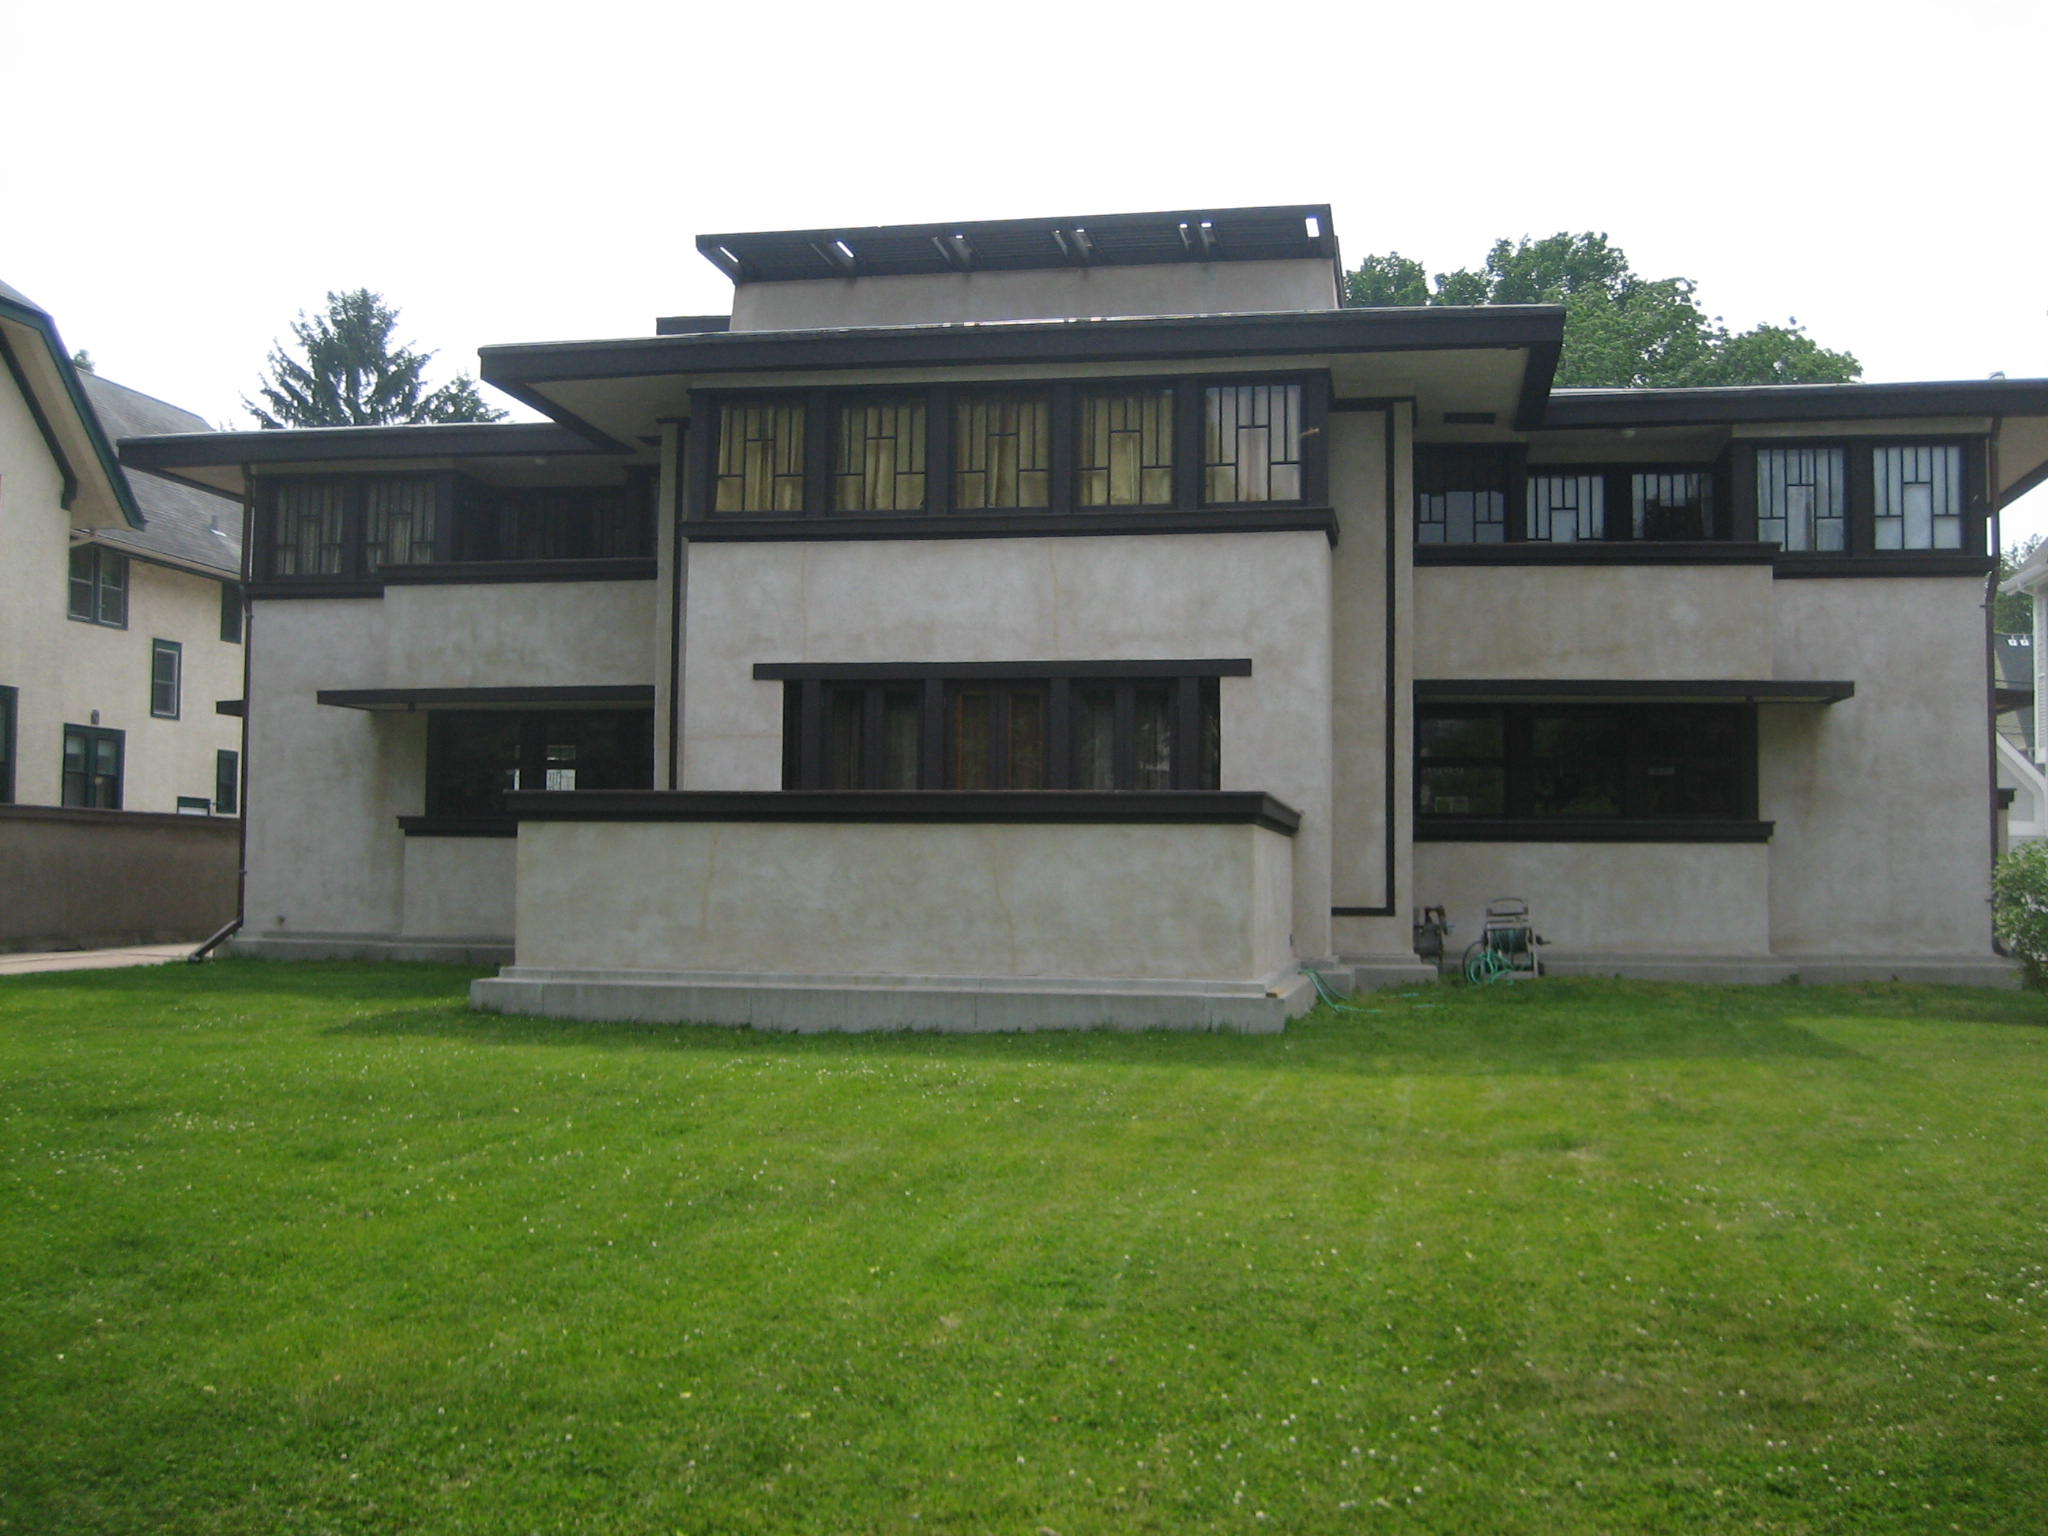 Frank Lloyd Wright Prairie Houses frank lloyd wright–prairie school of architecture historic